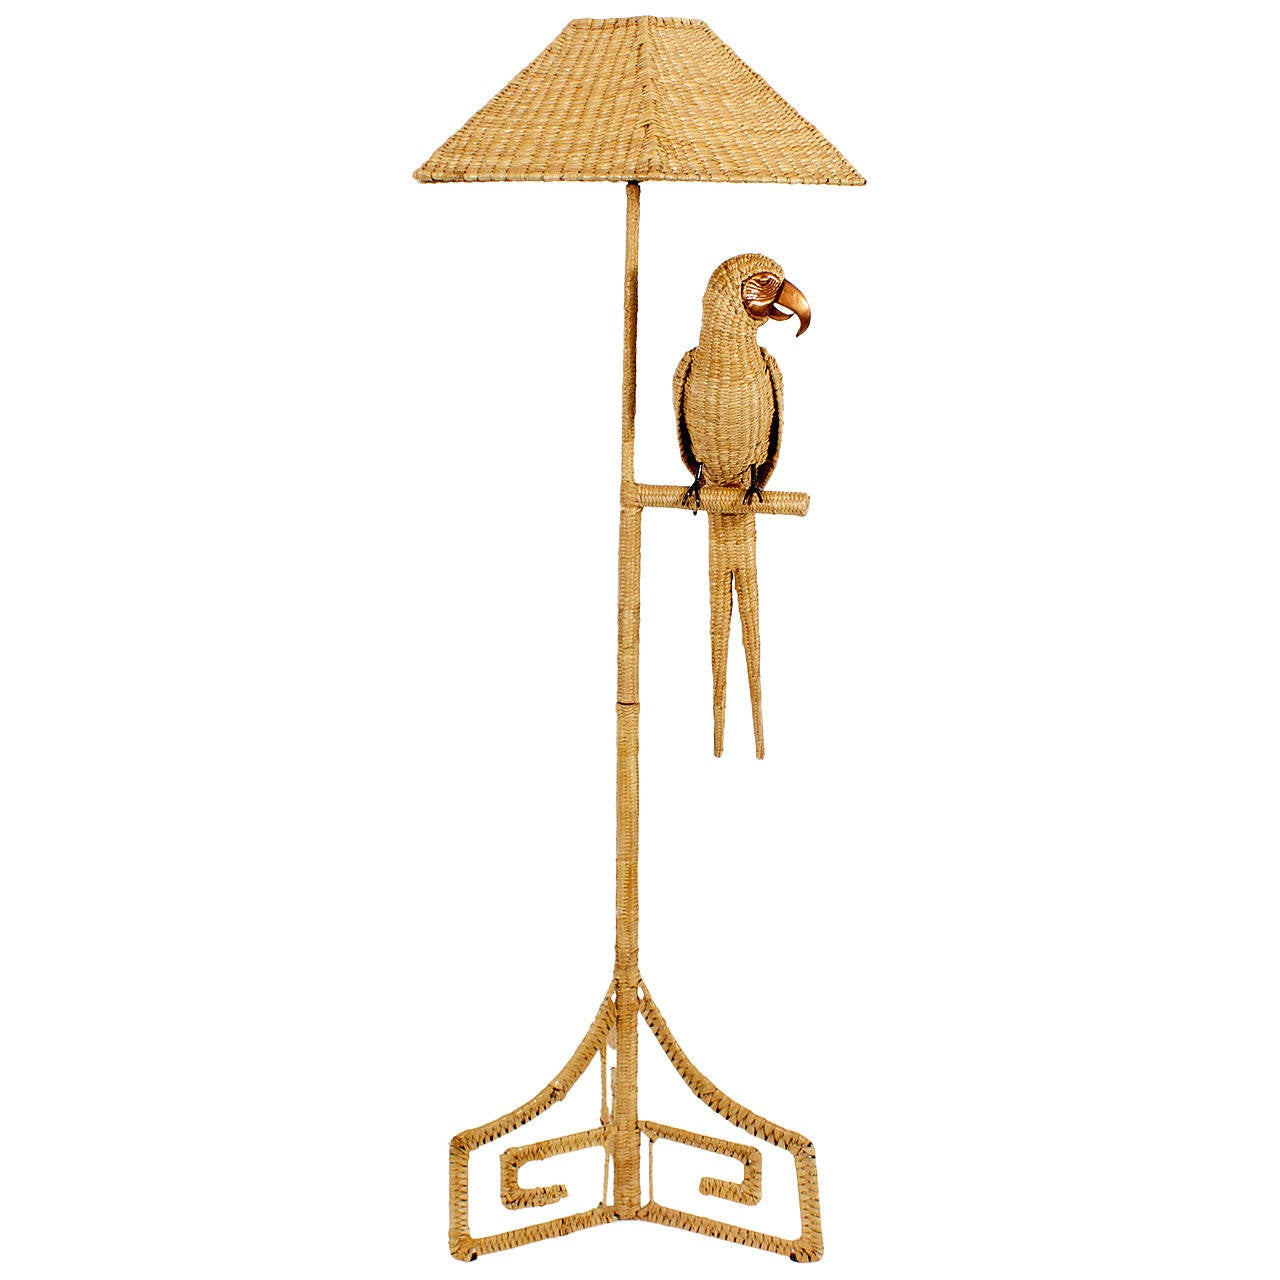 Labeled Mario Torres Parrot Floor Lamp at 1stdibs